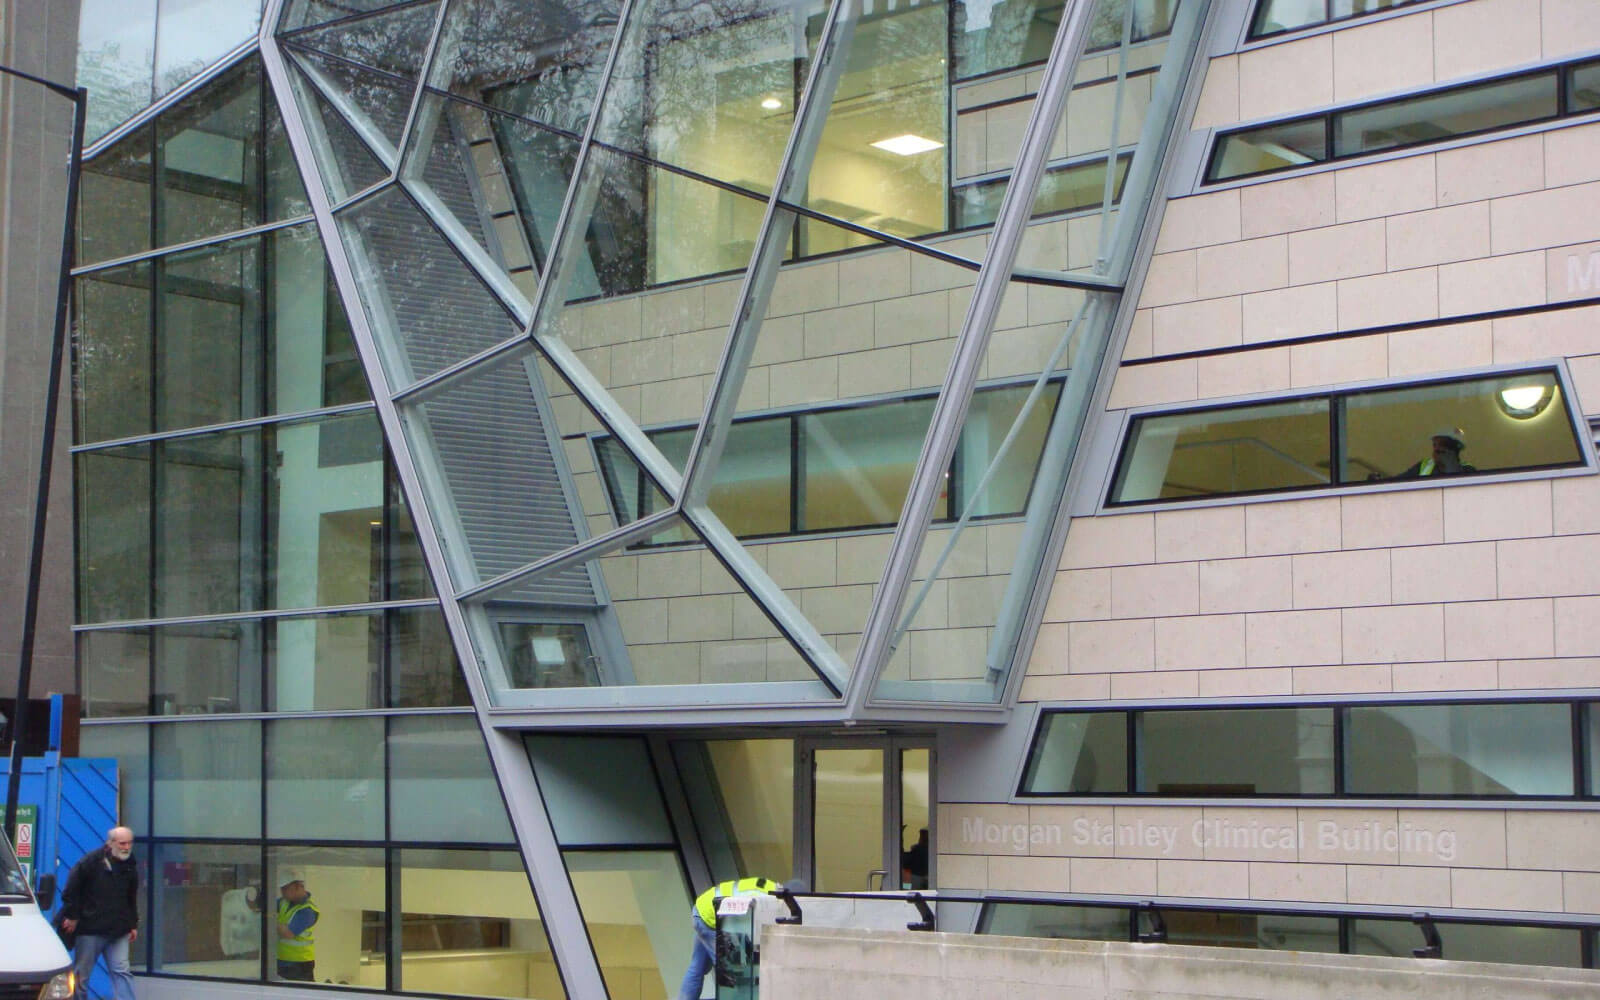 Green architects 'sedum' roofs for Great Ormond Street Hospital